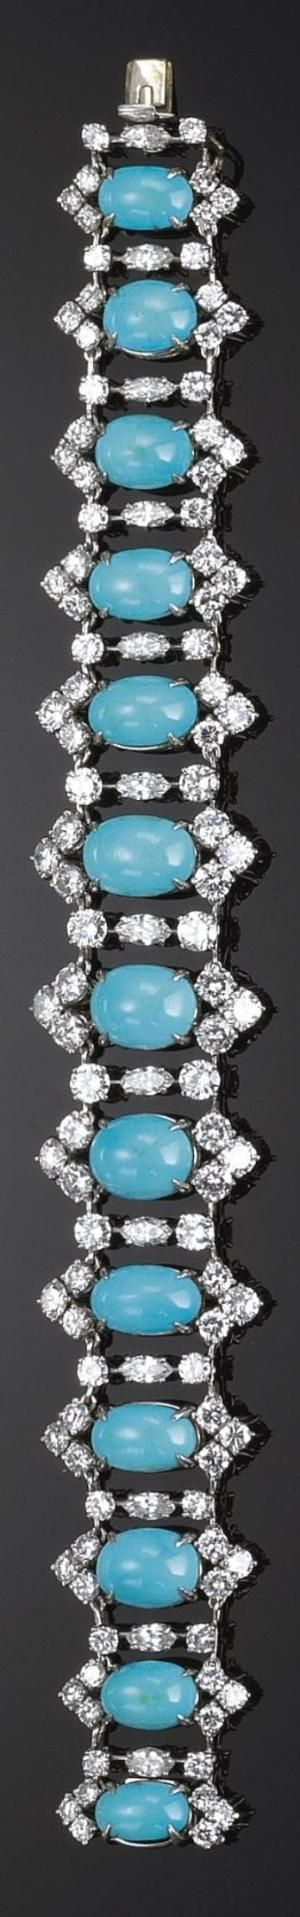 GOLD, TURQUOISE AND DIAMOND BRACELET, 1970S by lessie